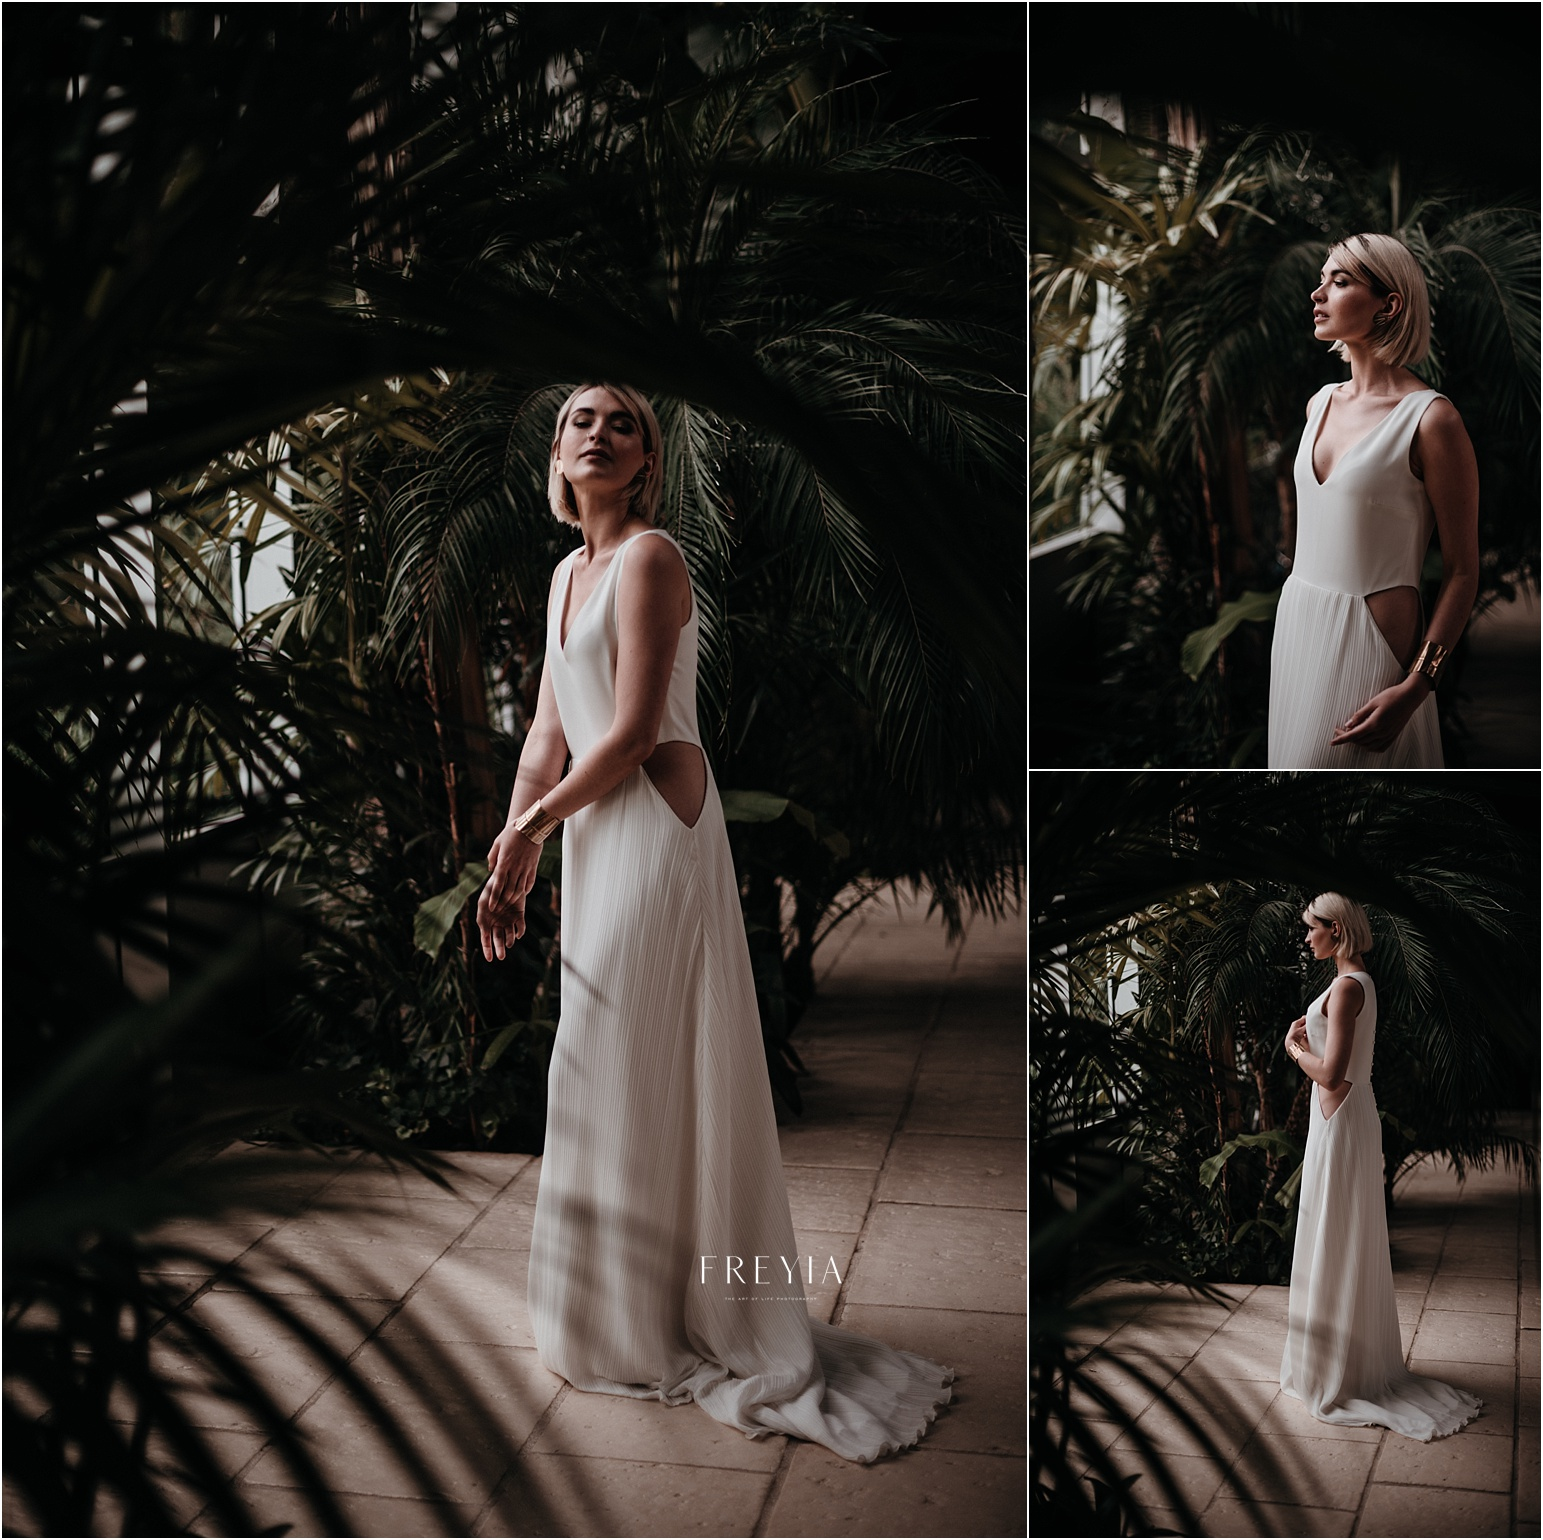 E + F inspiration vegetal tropical minimaliste espace nobuyoshi |  mariage reportage alternatif moody intime vintage naturel boho boheme |  PHOTOGRAPHE mariage PARIS france destination  | FREYIA photography-37.jpg